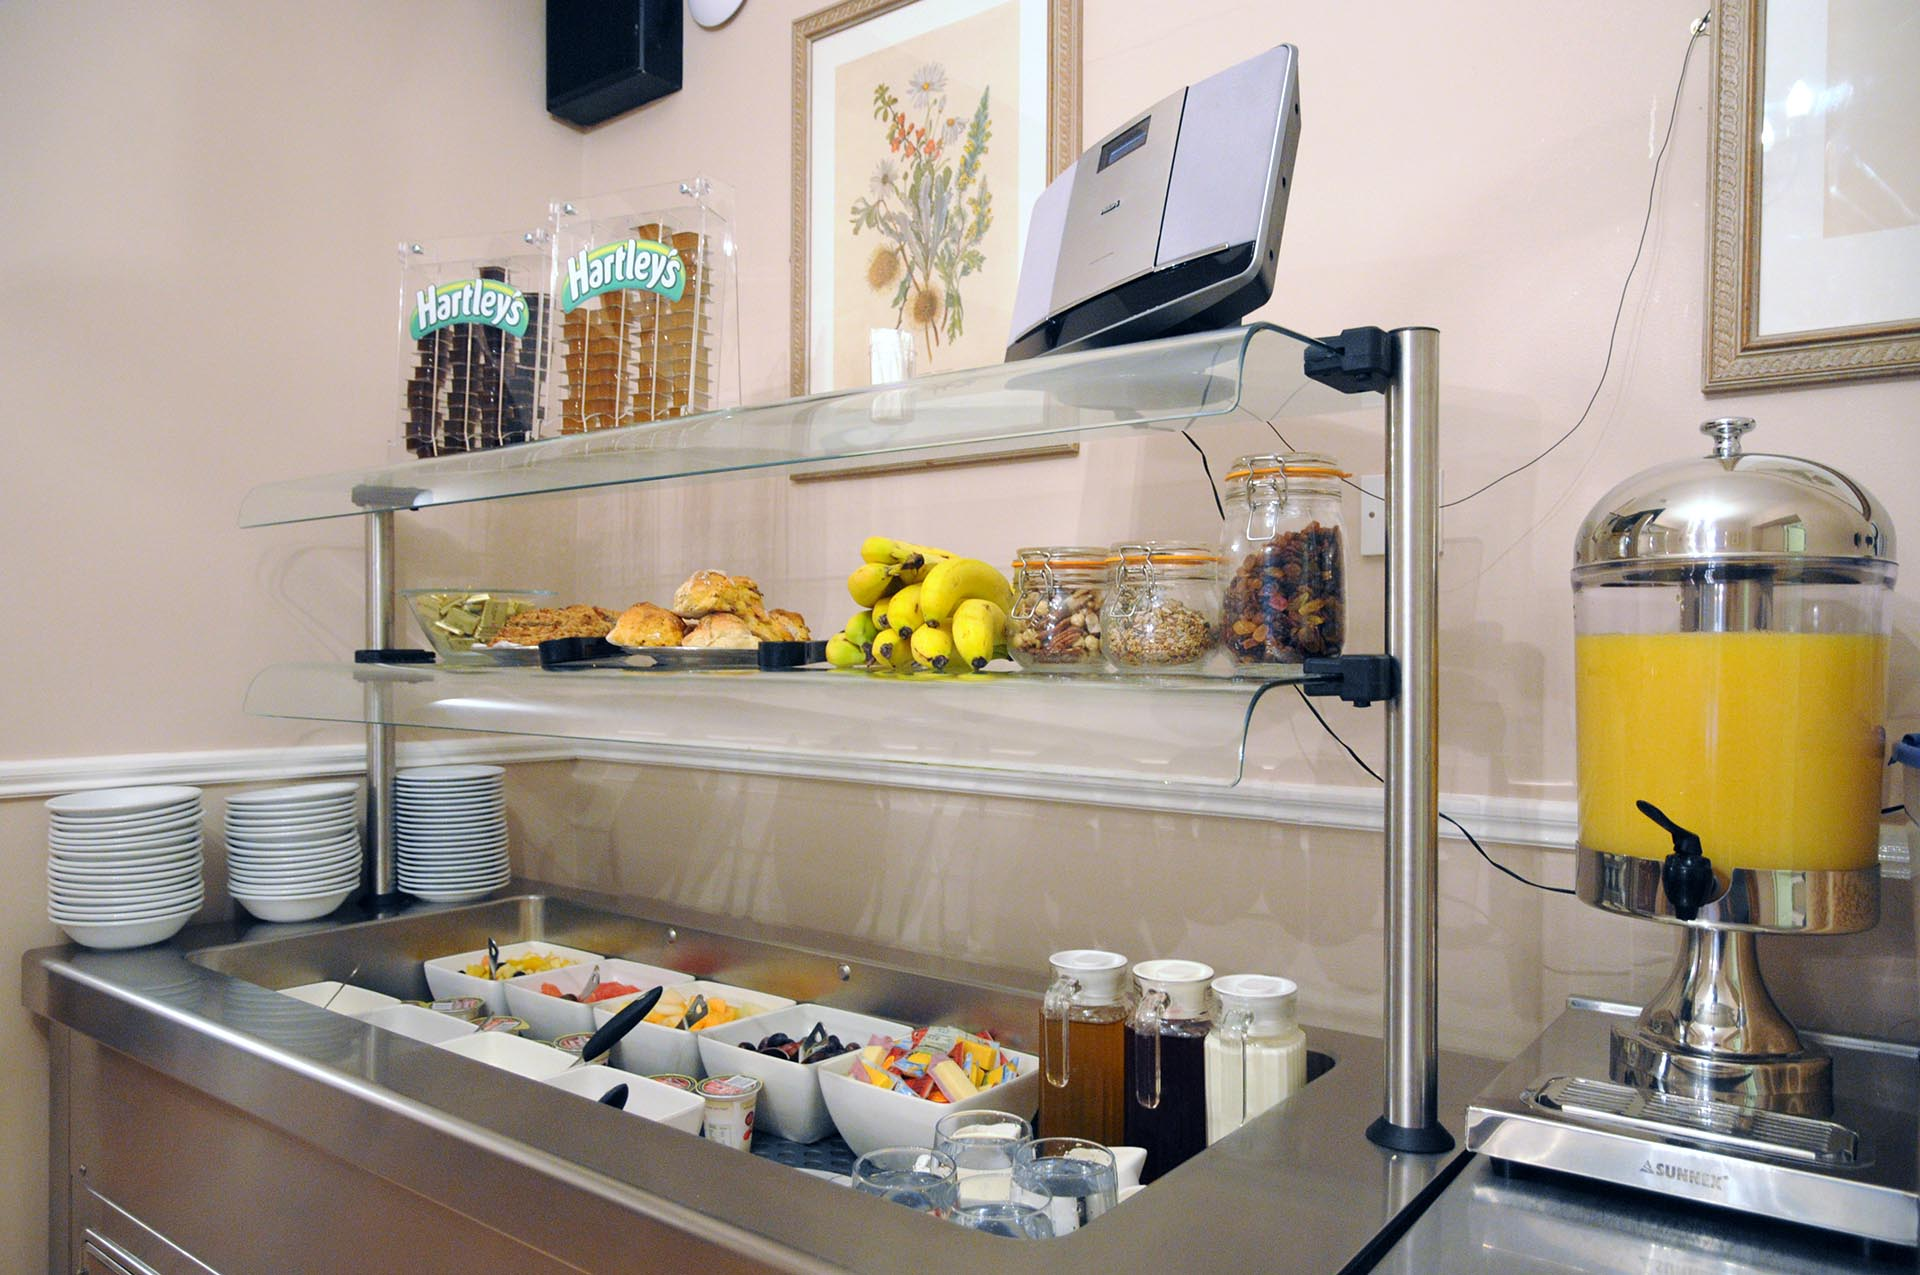 buffet at Barr na Sraide B&B and family hotel. Enjoy a variety of hot and cold foods prepared freshly everyday